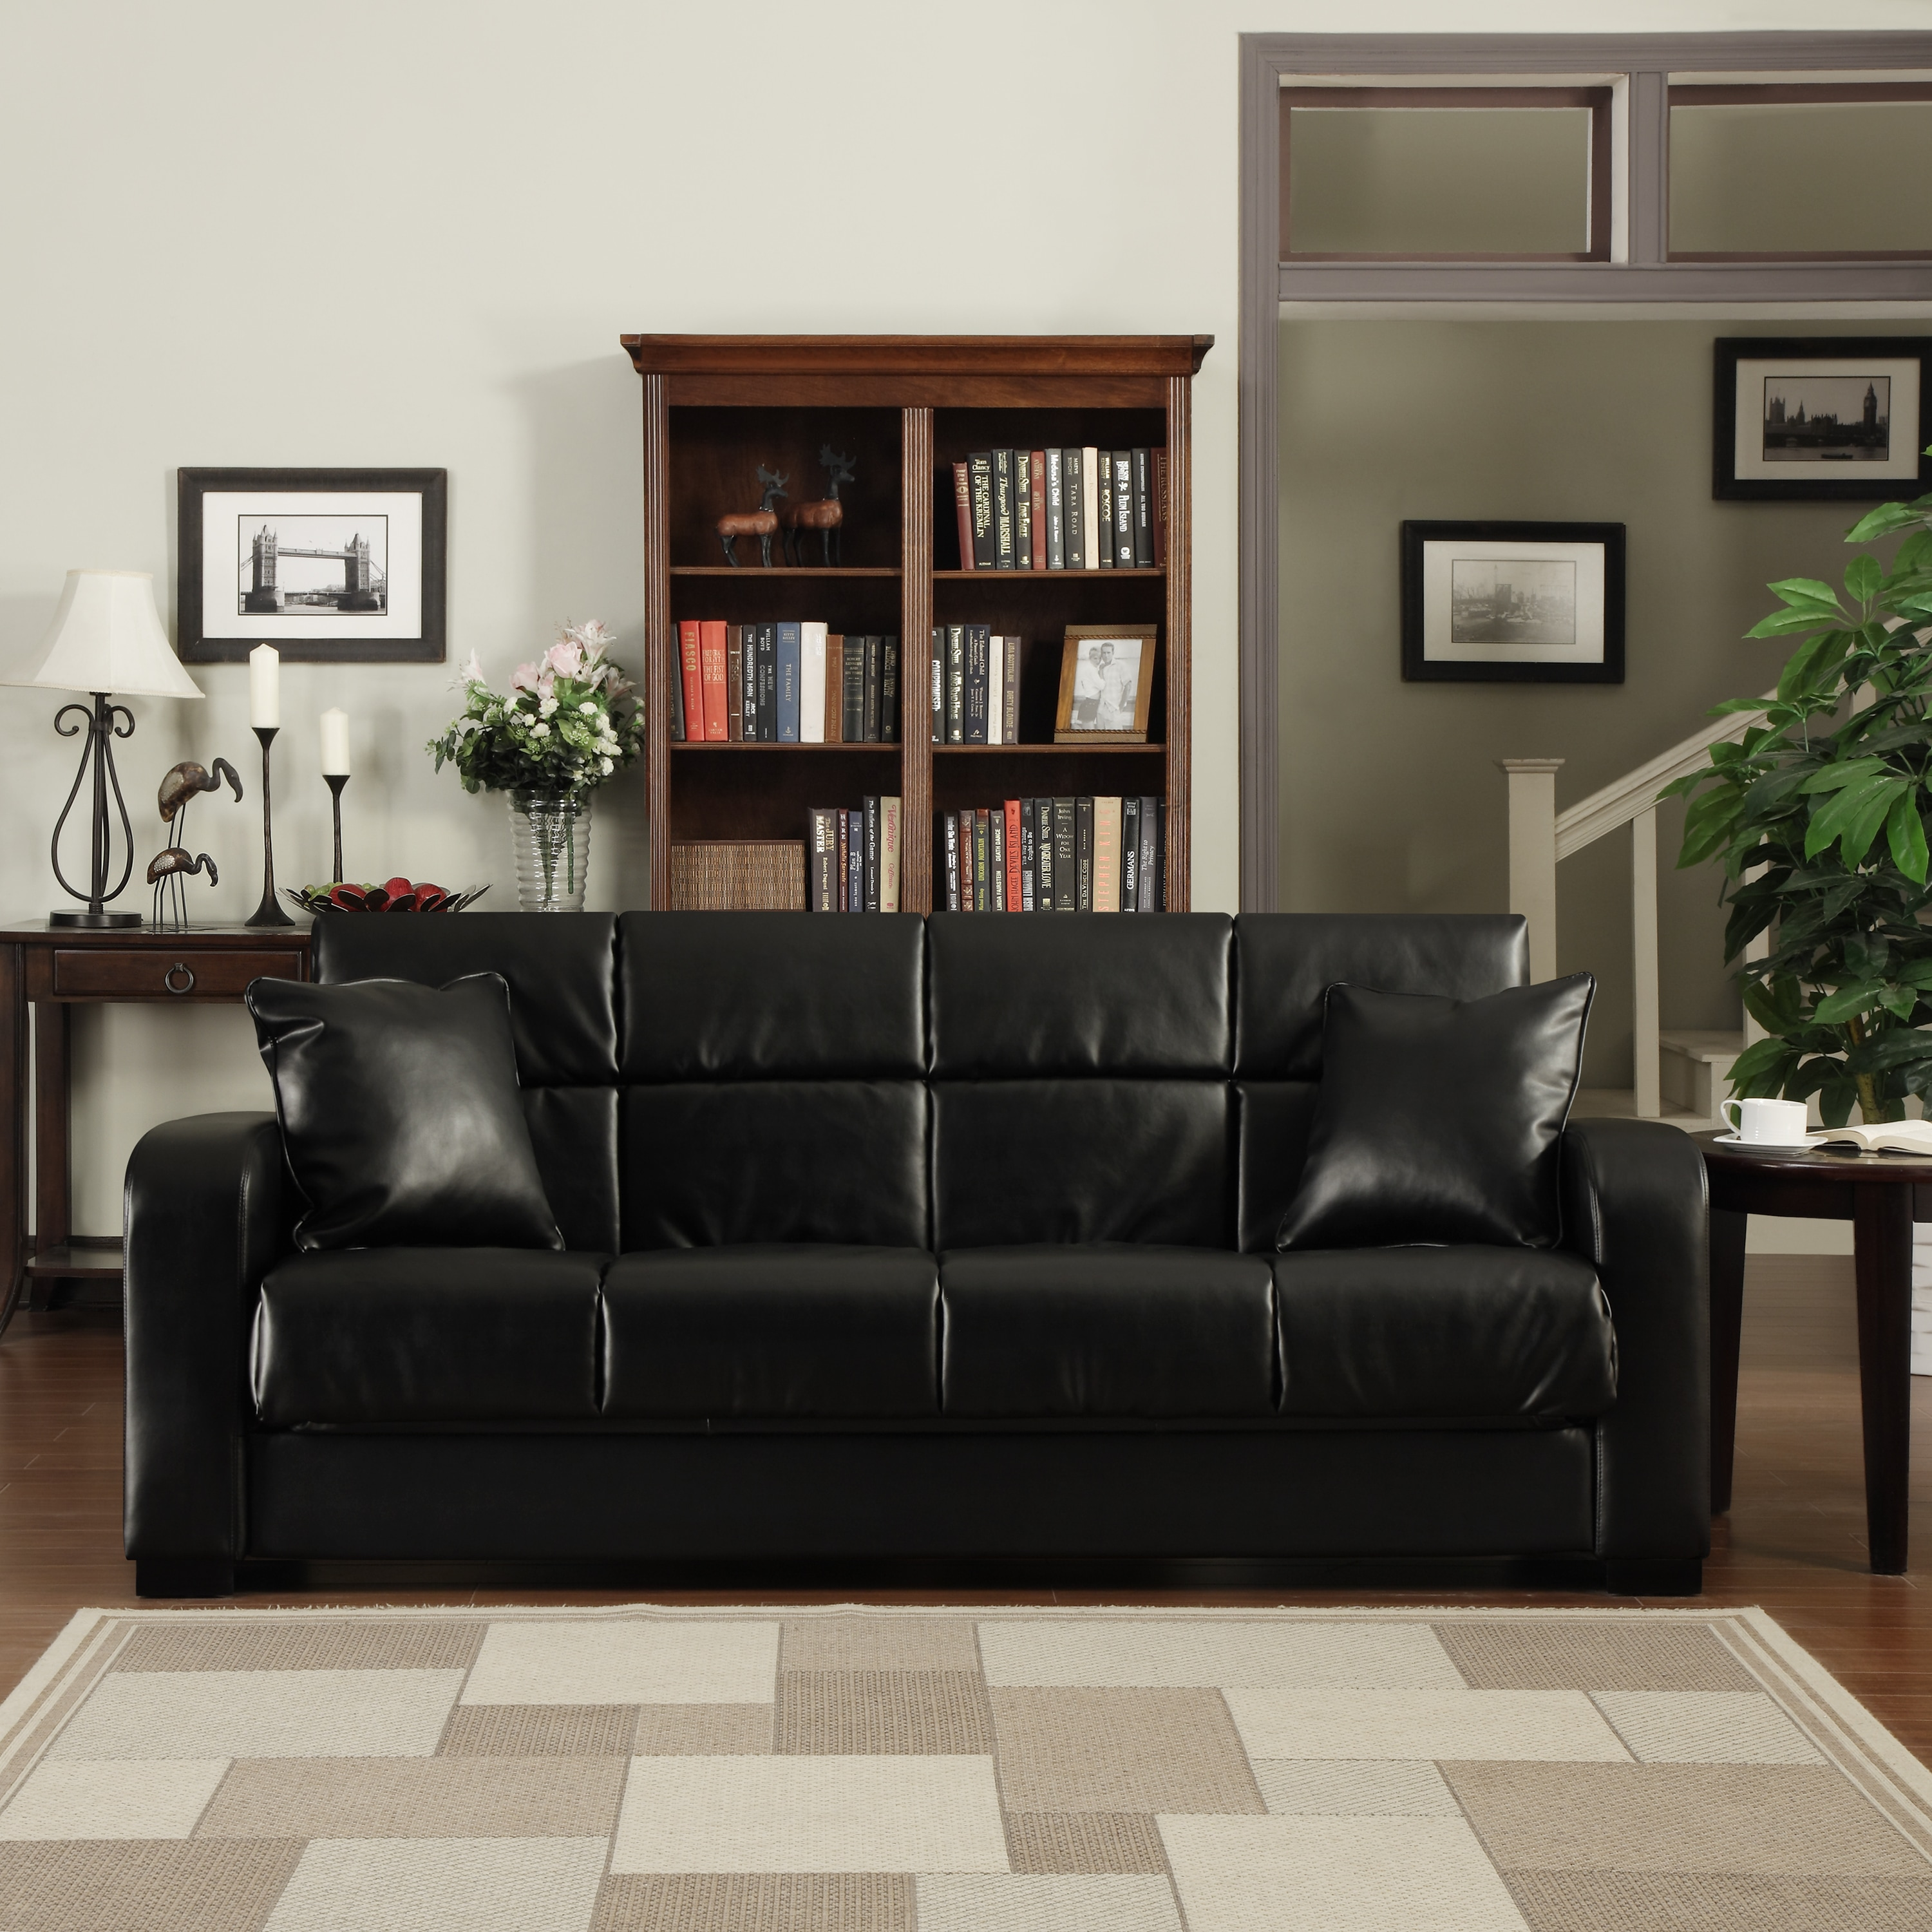 Portfolio Turco Convert-a-Couch� Black Renu Leather Futon Sofa Sleeper at Sears.com